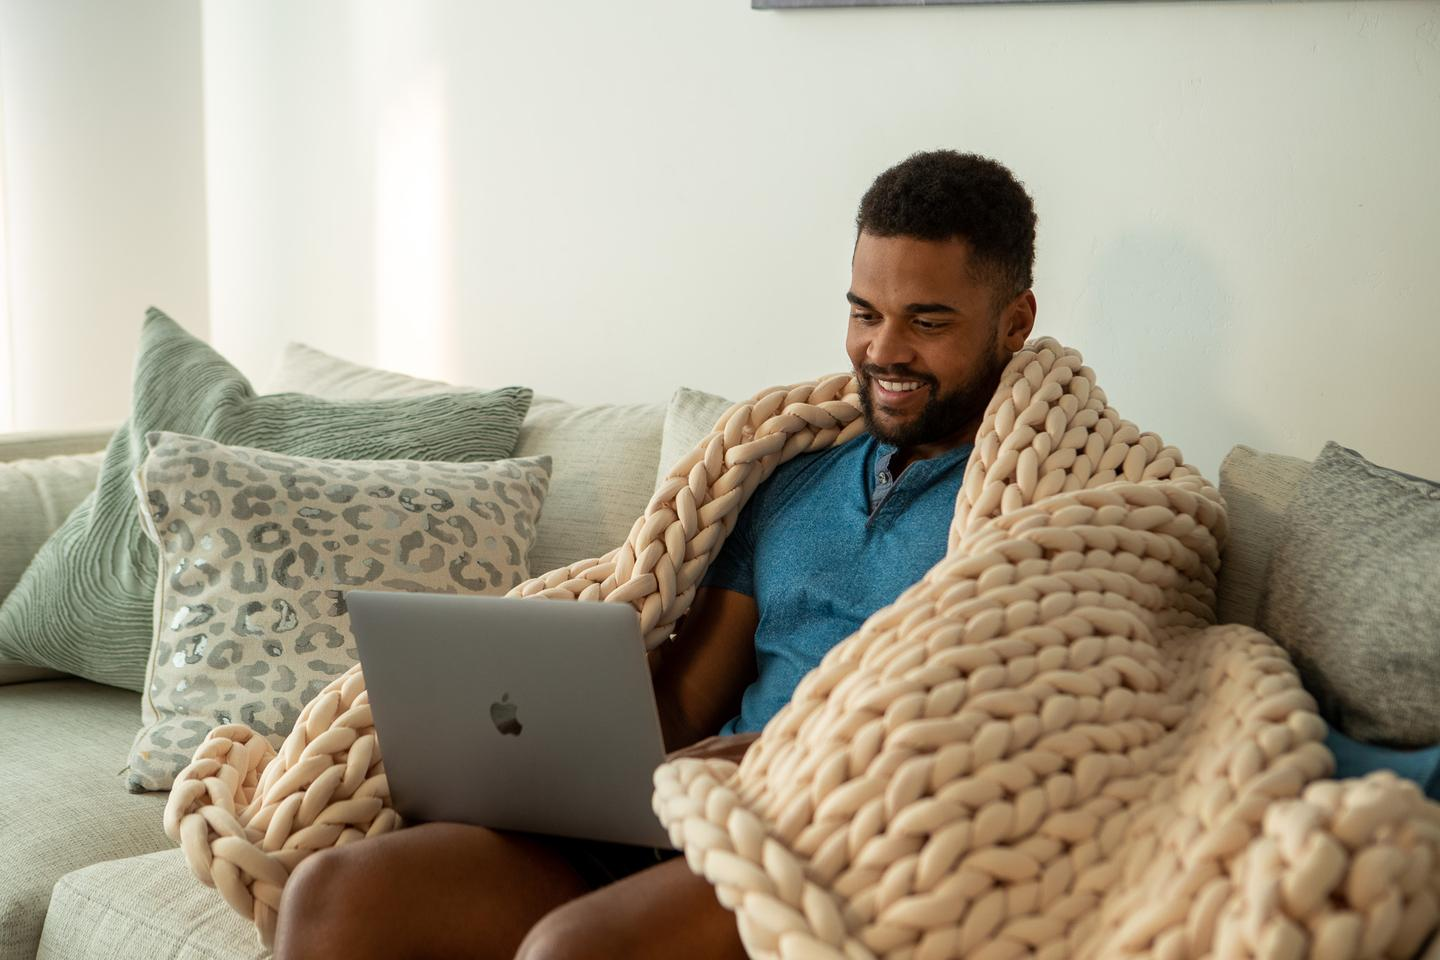 The Nuzzie Knit is great for anyone needing help sleeping, relaxing or dealing with anxiety